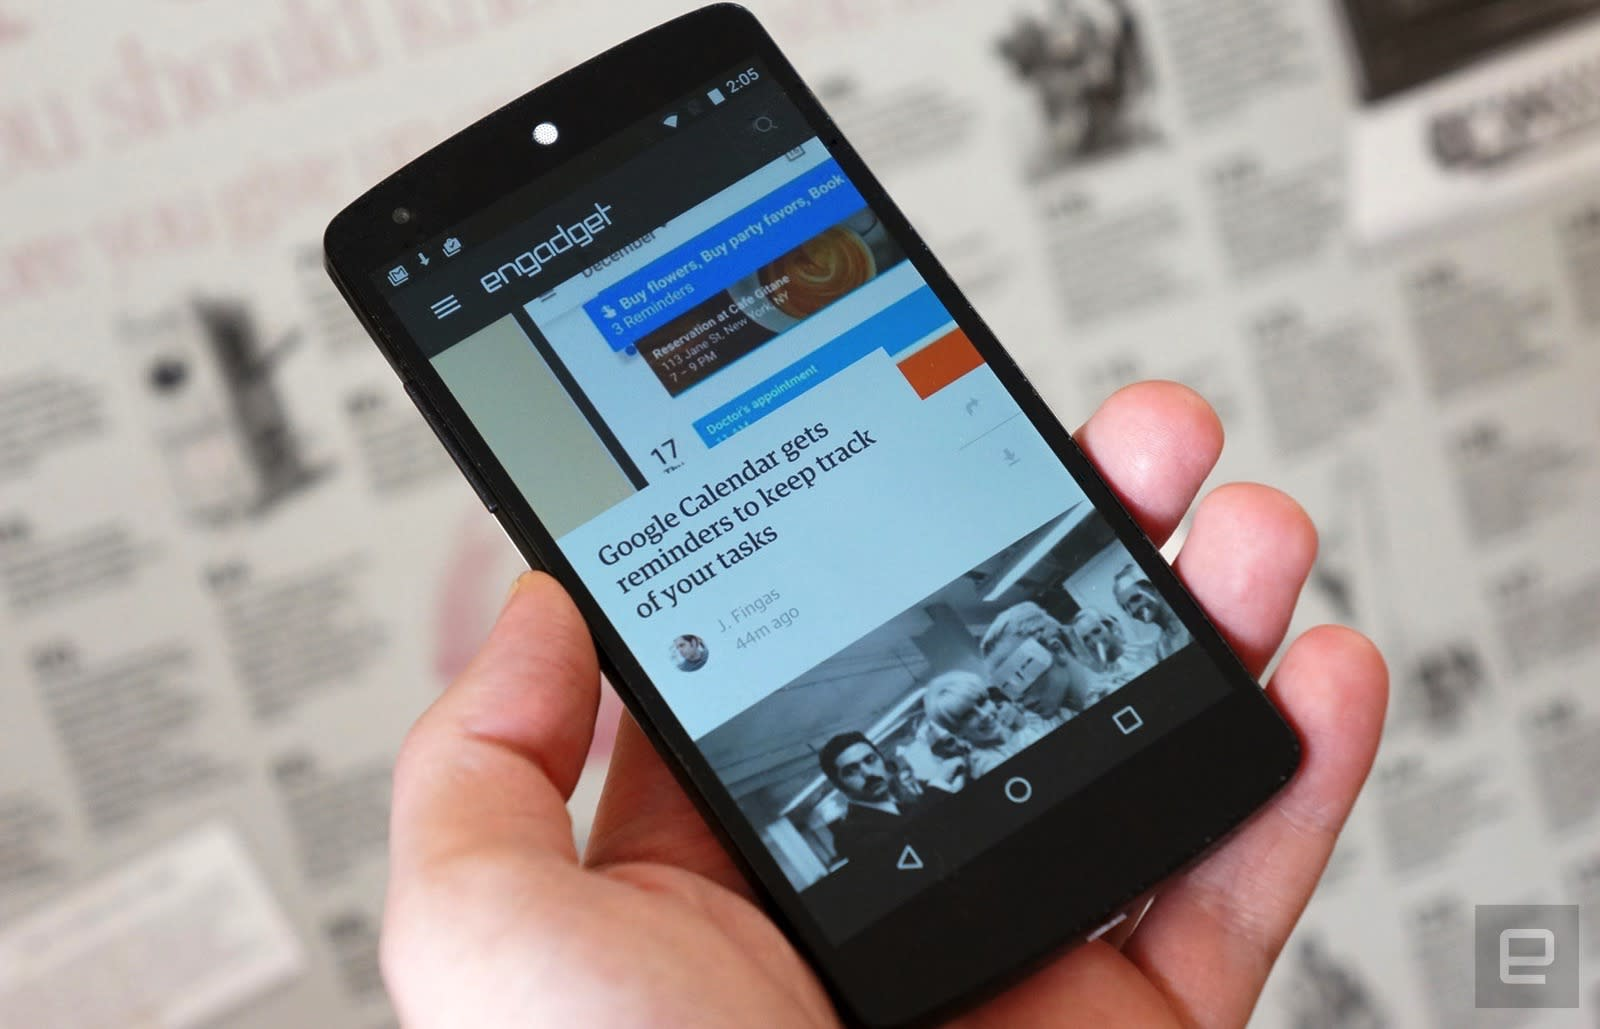 Chrome cleans up messy URLs when you share from your phone